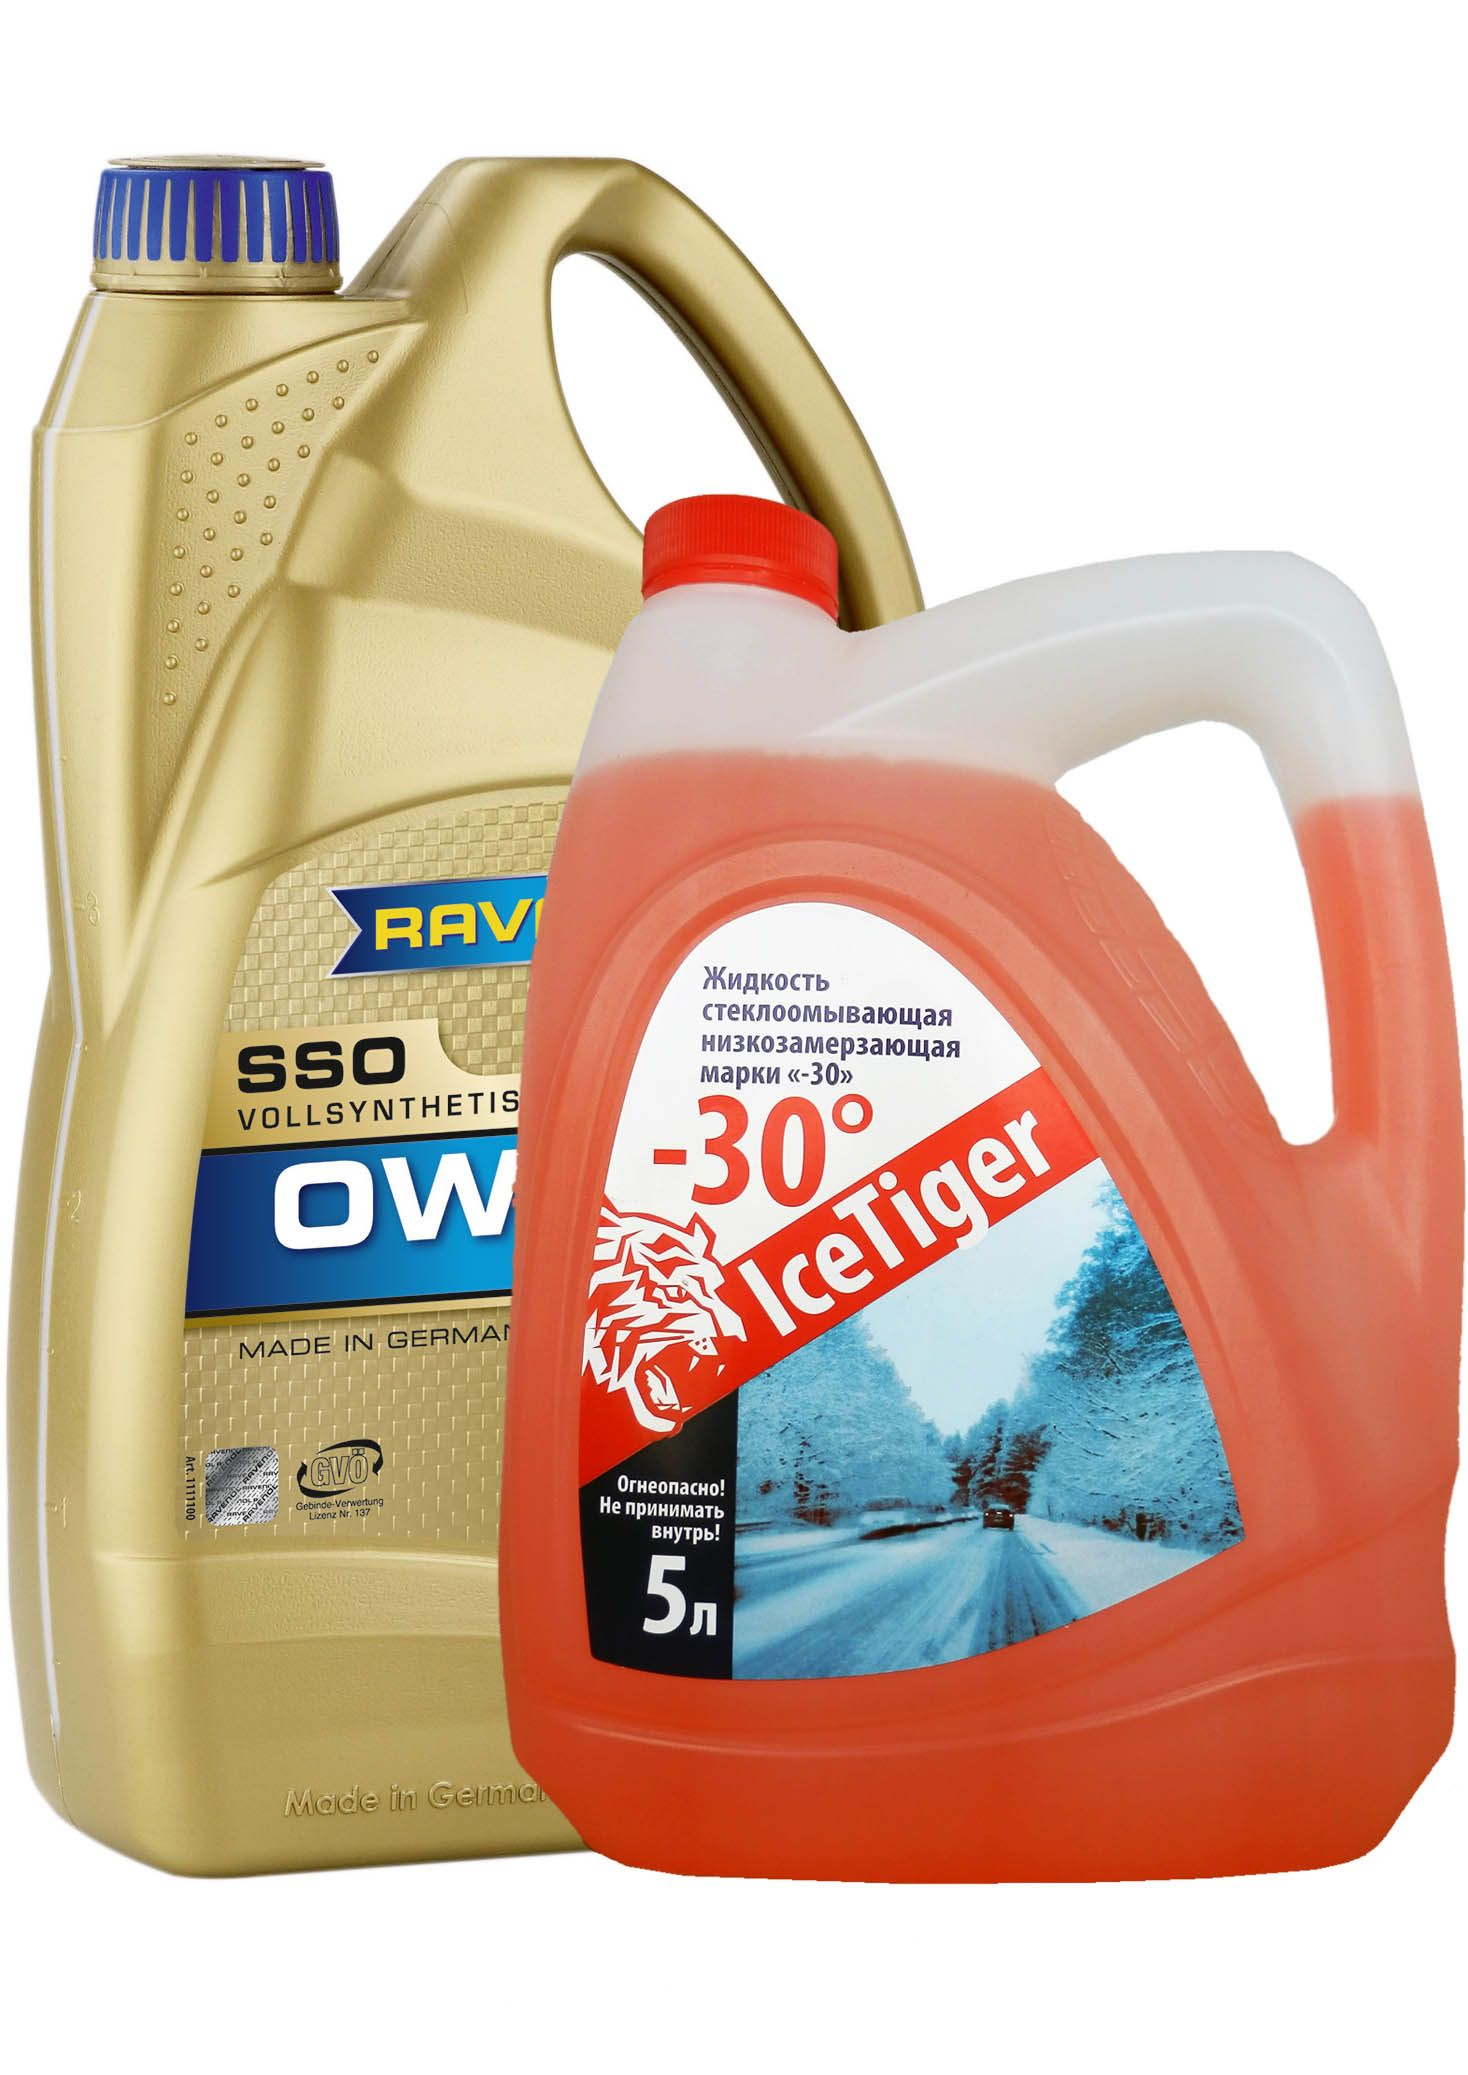 Набор RAVENOL SSO SAE 0W-30 ( 5л) new + Ice Tiger -30 (5л) от Ravta